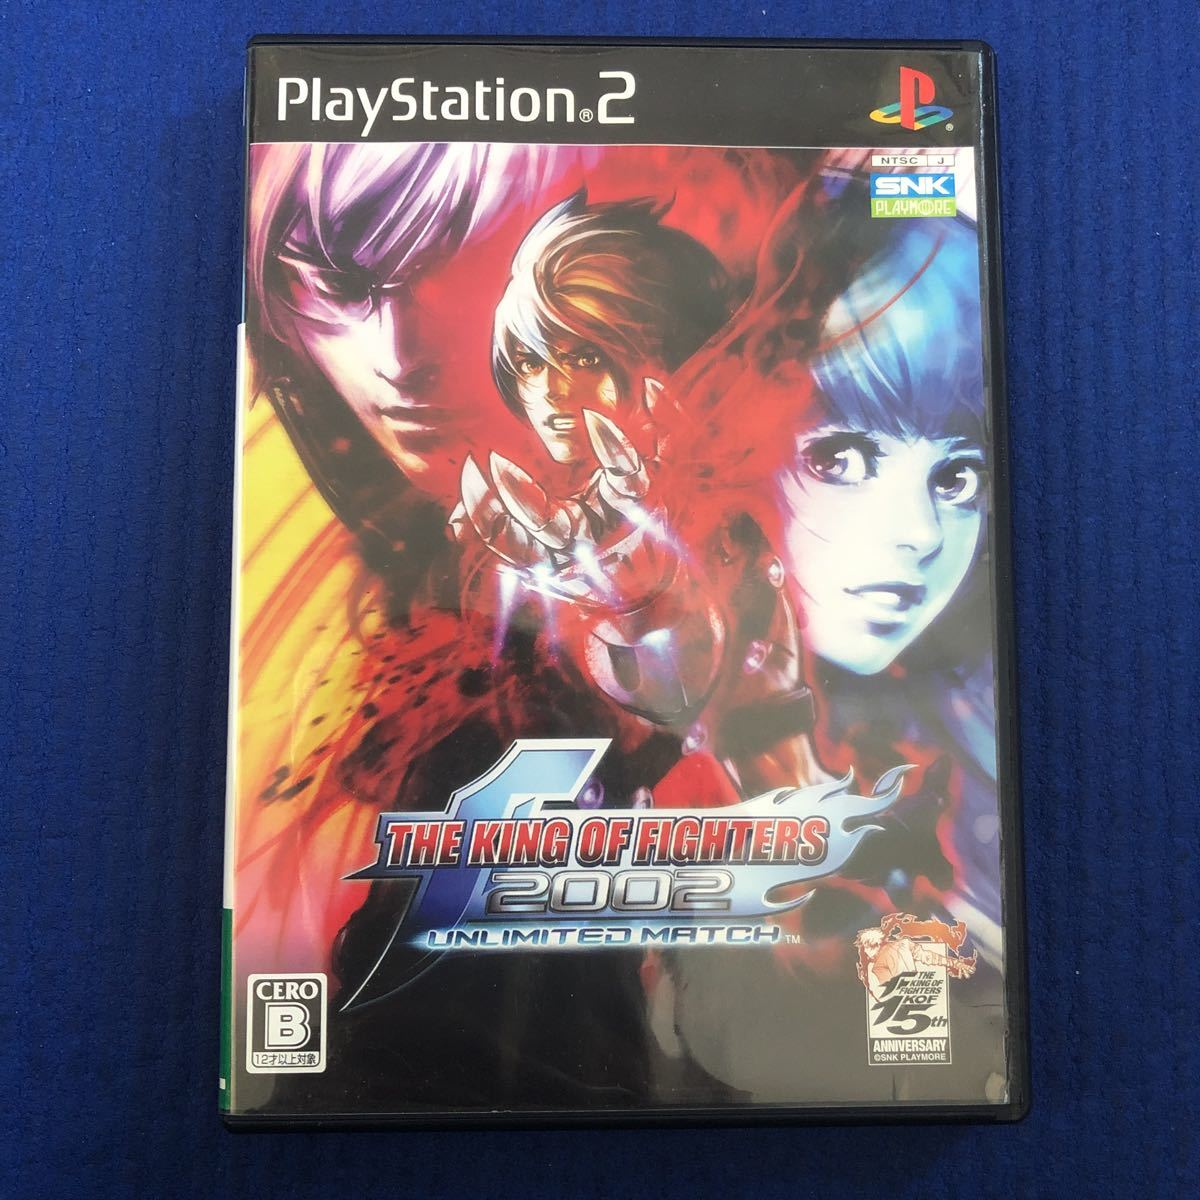 THE KING OF FIGHTERS 2002 UNLIMITED MATCH PS2 【335】